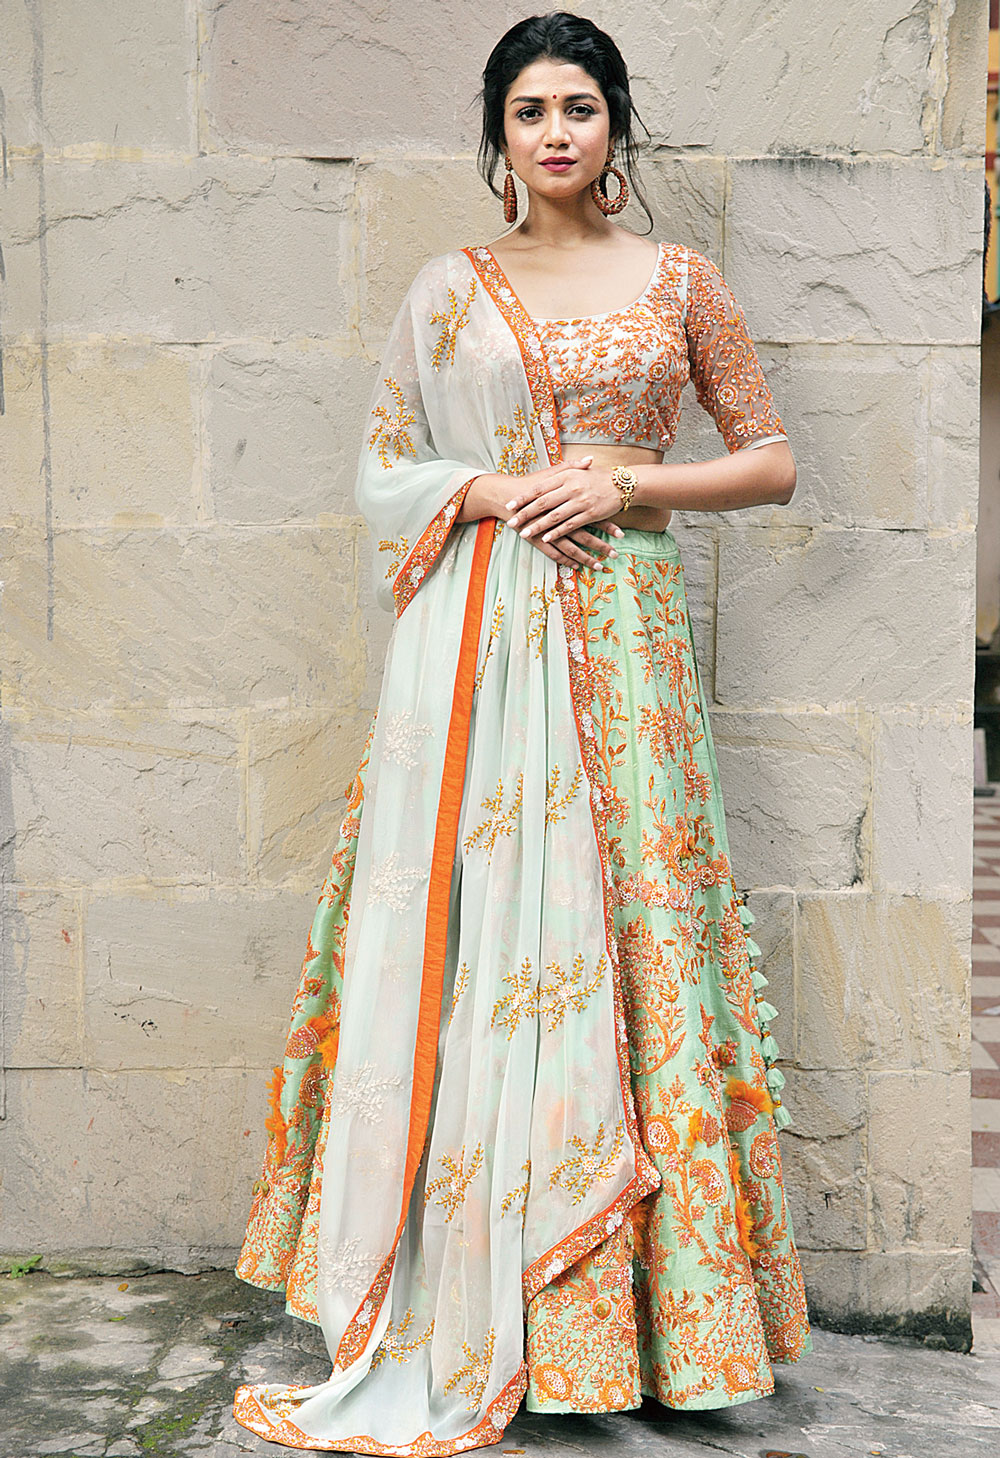 Go traditional yet trendy in an easy-breezy lehnga for the mehndi. With hand-embroidery and orange sequin detailing, this is made with a mix of net and silk, and paired with a light net dupatta